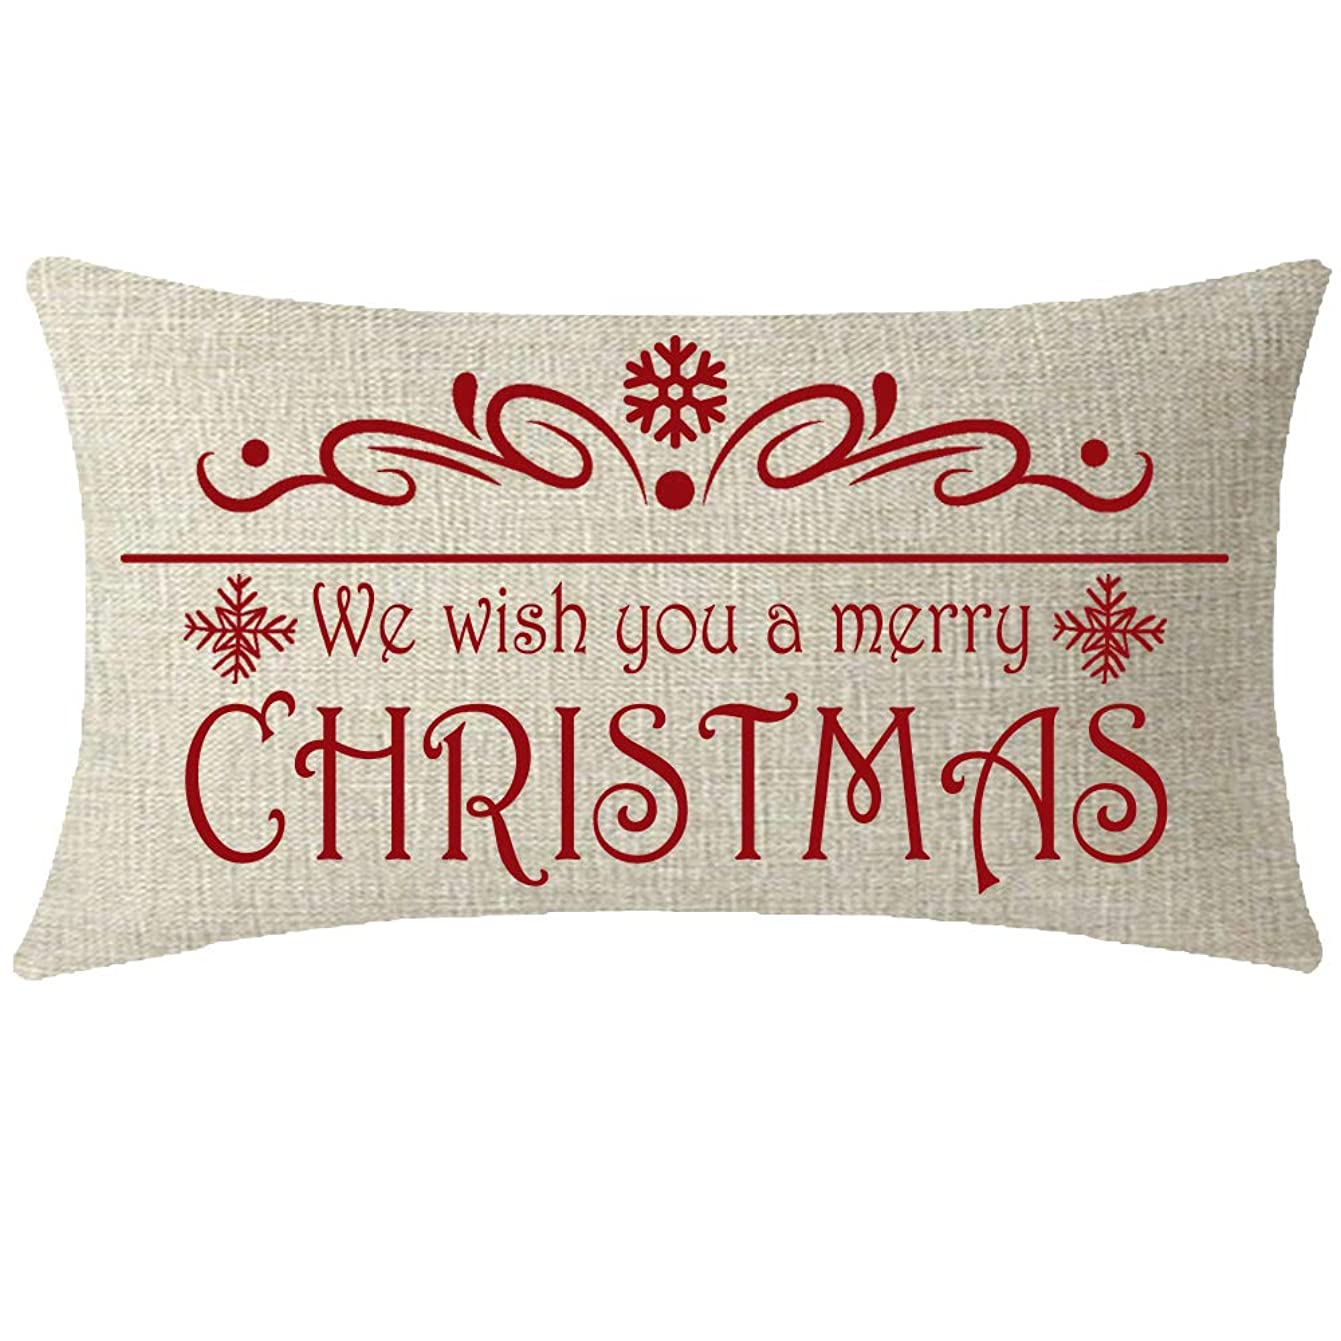 NIDITW Nice Sister Mother Gift We Wish You A Merry Christmas Floral Snowflakes Lumbar Waist Beige Cotton Linen Decorative Throw Pillowcase Cover Cushion Case for Sofa Chair Oblong 12x20 Inches